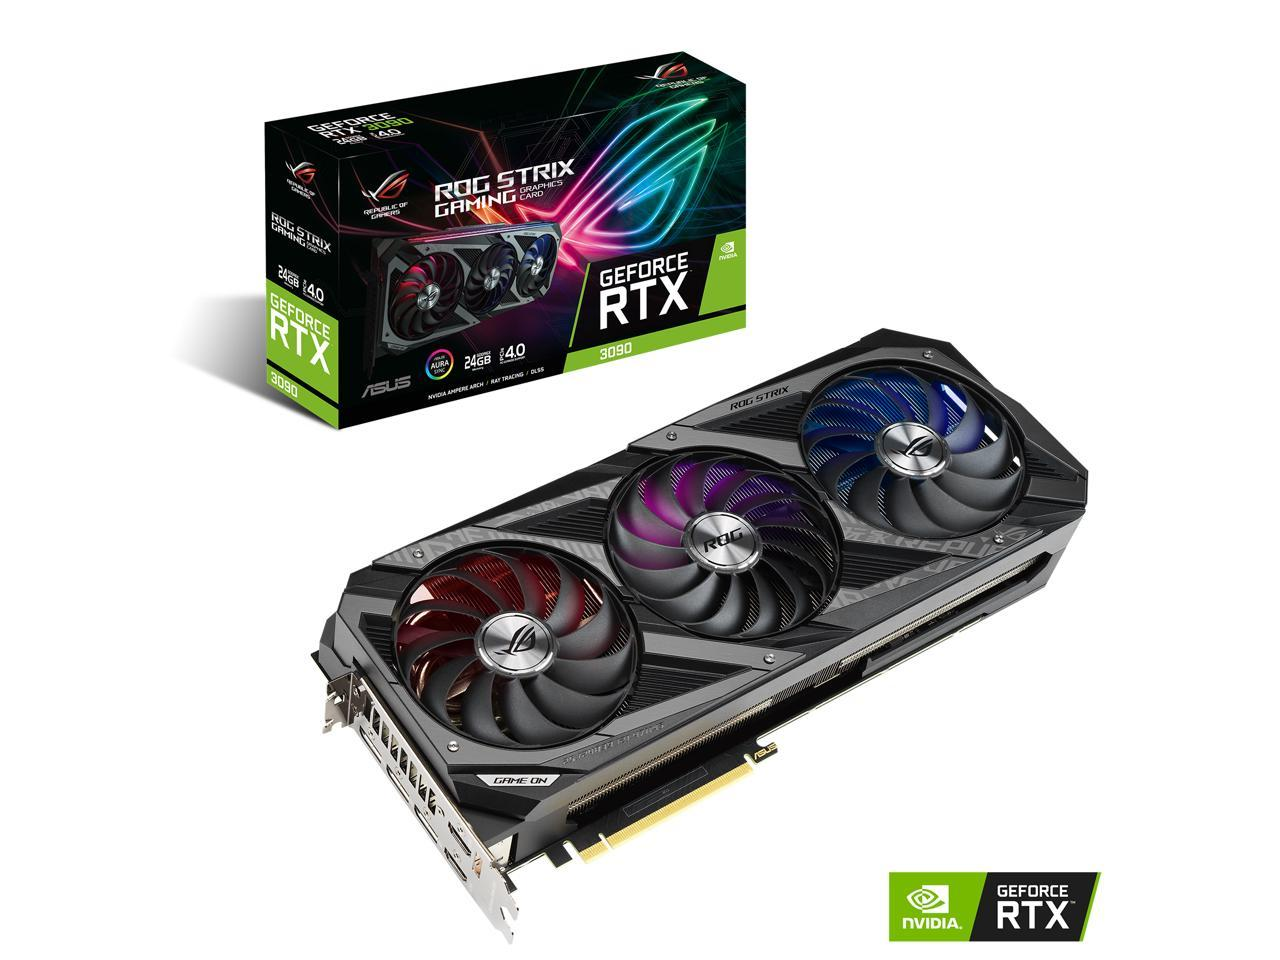 ASUS ROG Strix GeForce RTX 3090 DirectX 12 BACKORDER